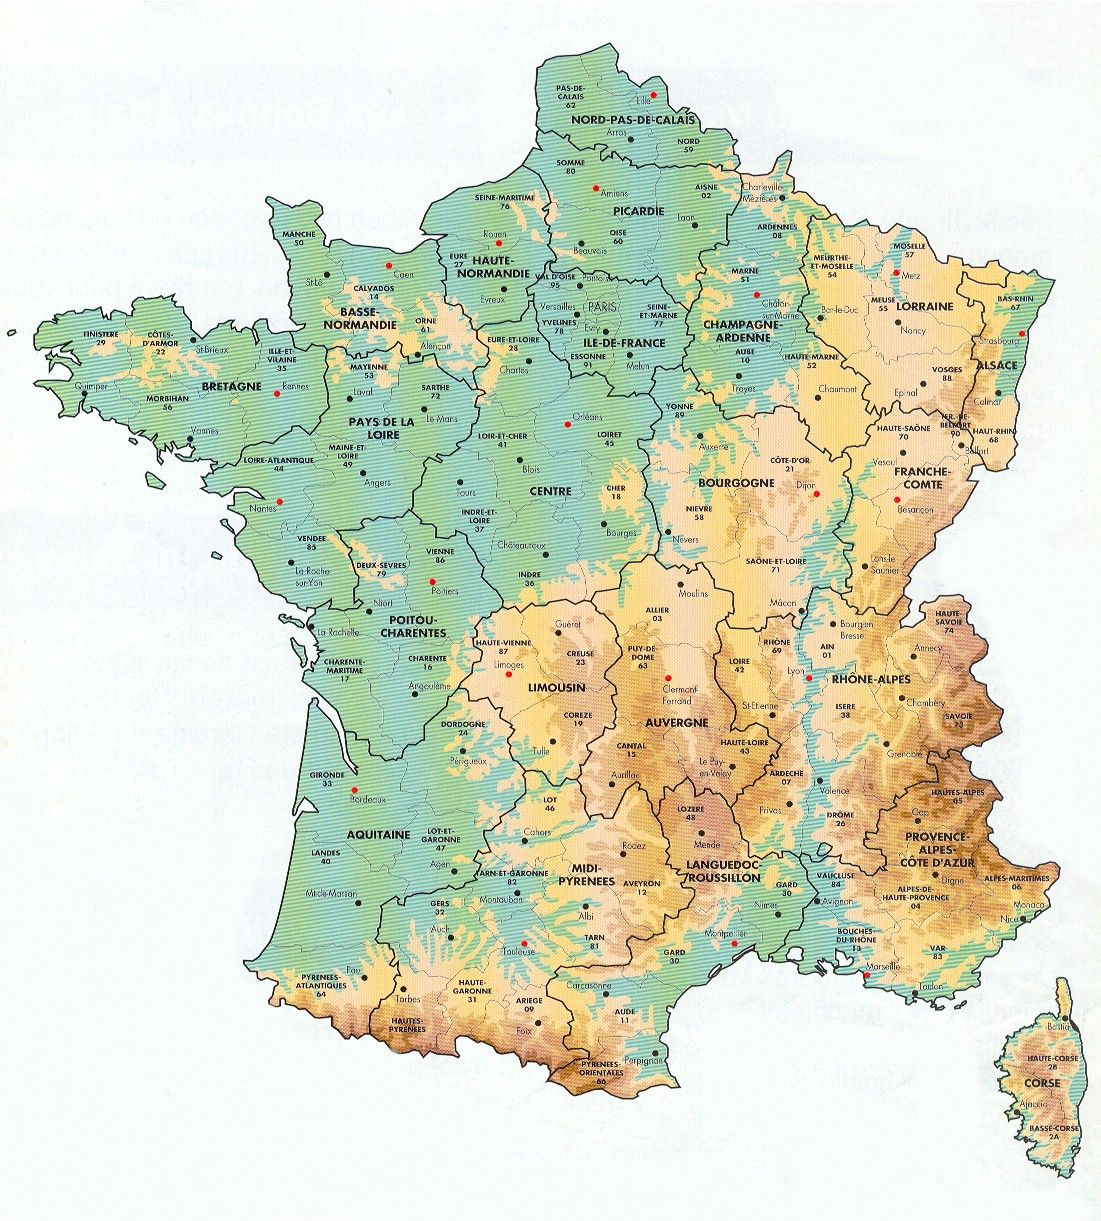 Mountains Of France Map.Geological Map Of France Showing Mountain Ranges Rivers Etc Note